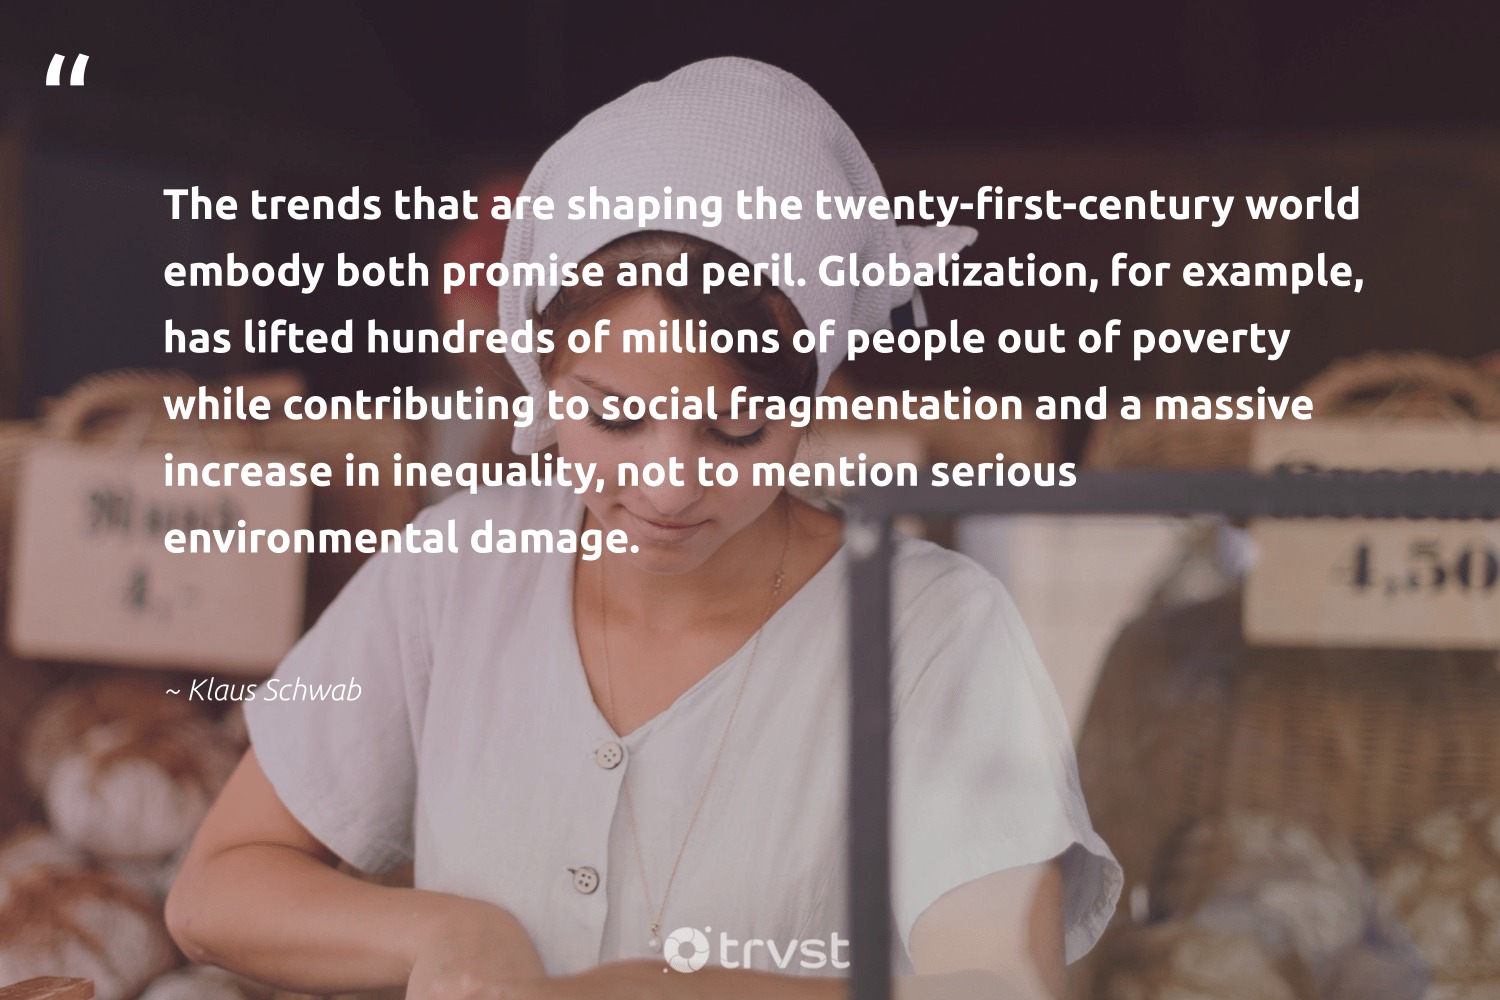 """The trends that are shaping the twenty-first-century world embody both promise and peril. Globalization, for example, has lifted hundreds of millions of people out of poverty while contributing to social fragmentation and a massive increase in inequality, not to mention serious environmental damage.""  - Klaus Schwab #trvst #quotes #environmental #poverty #endpoverty #giveback #equalopportunity #socialchange #socialgood #makeadifference #ecoconscious #weareallone"